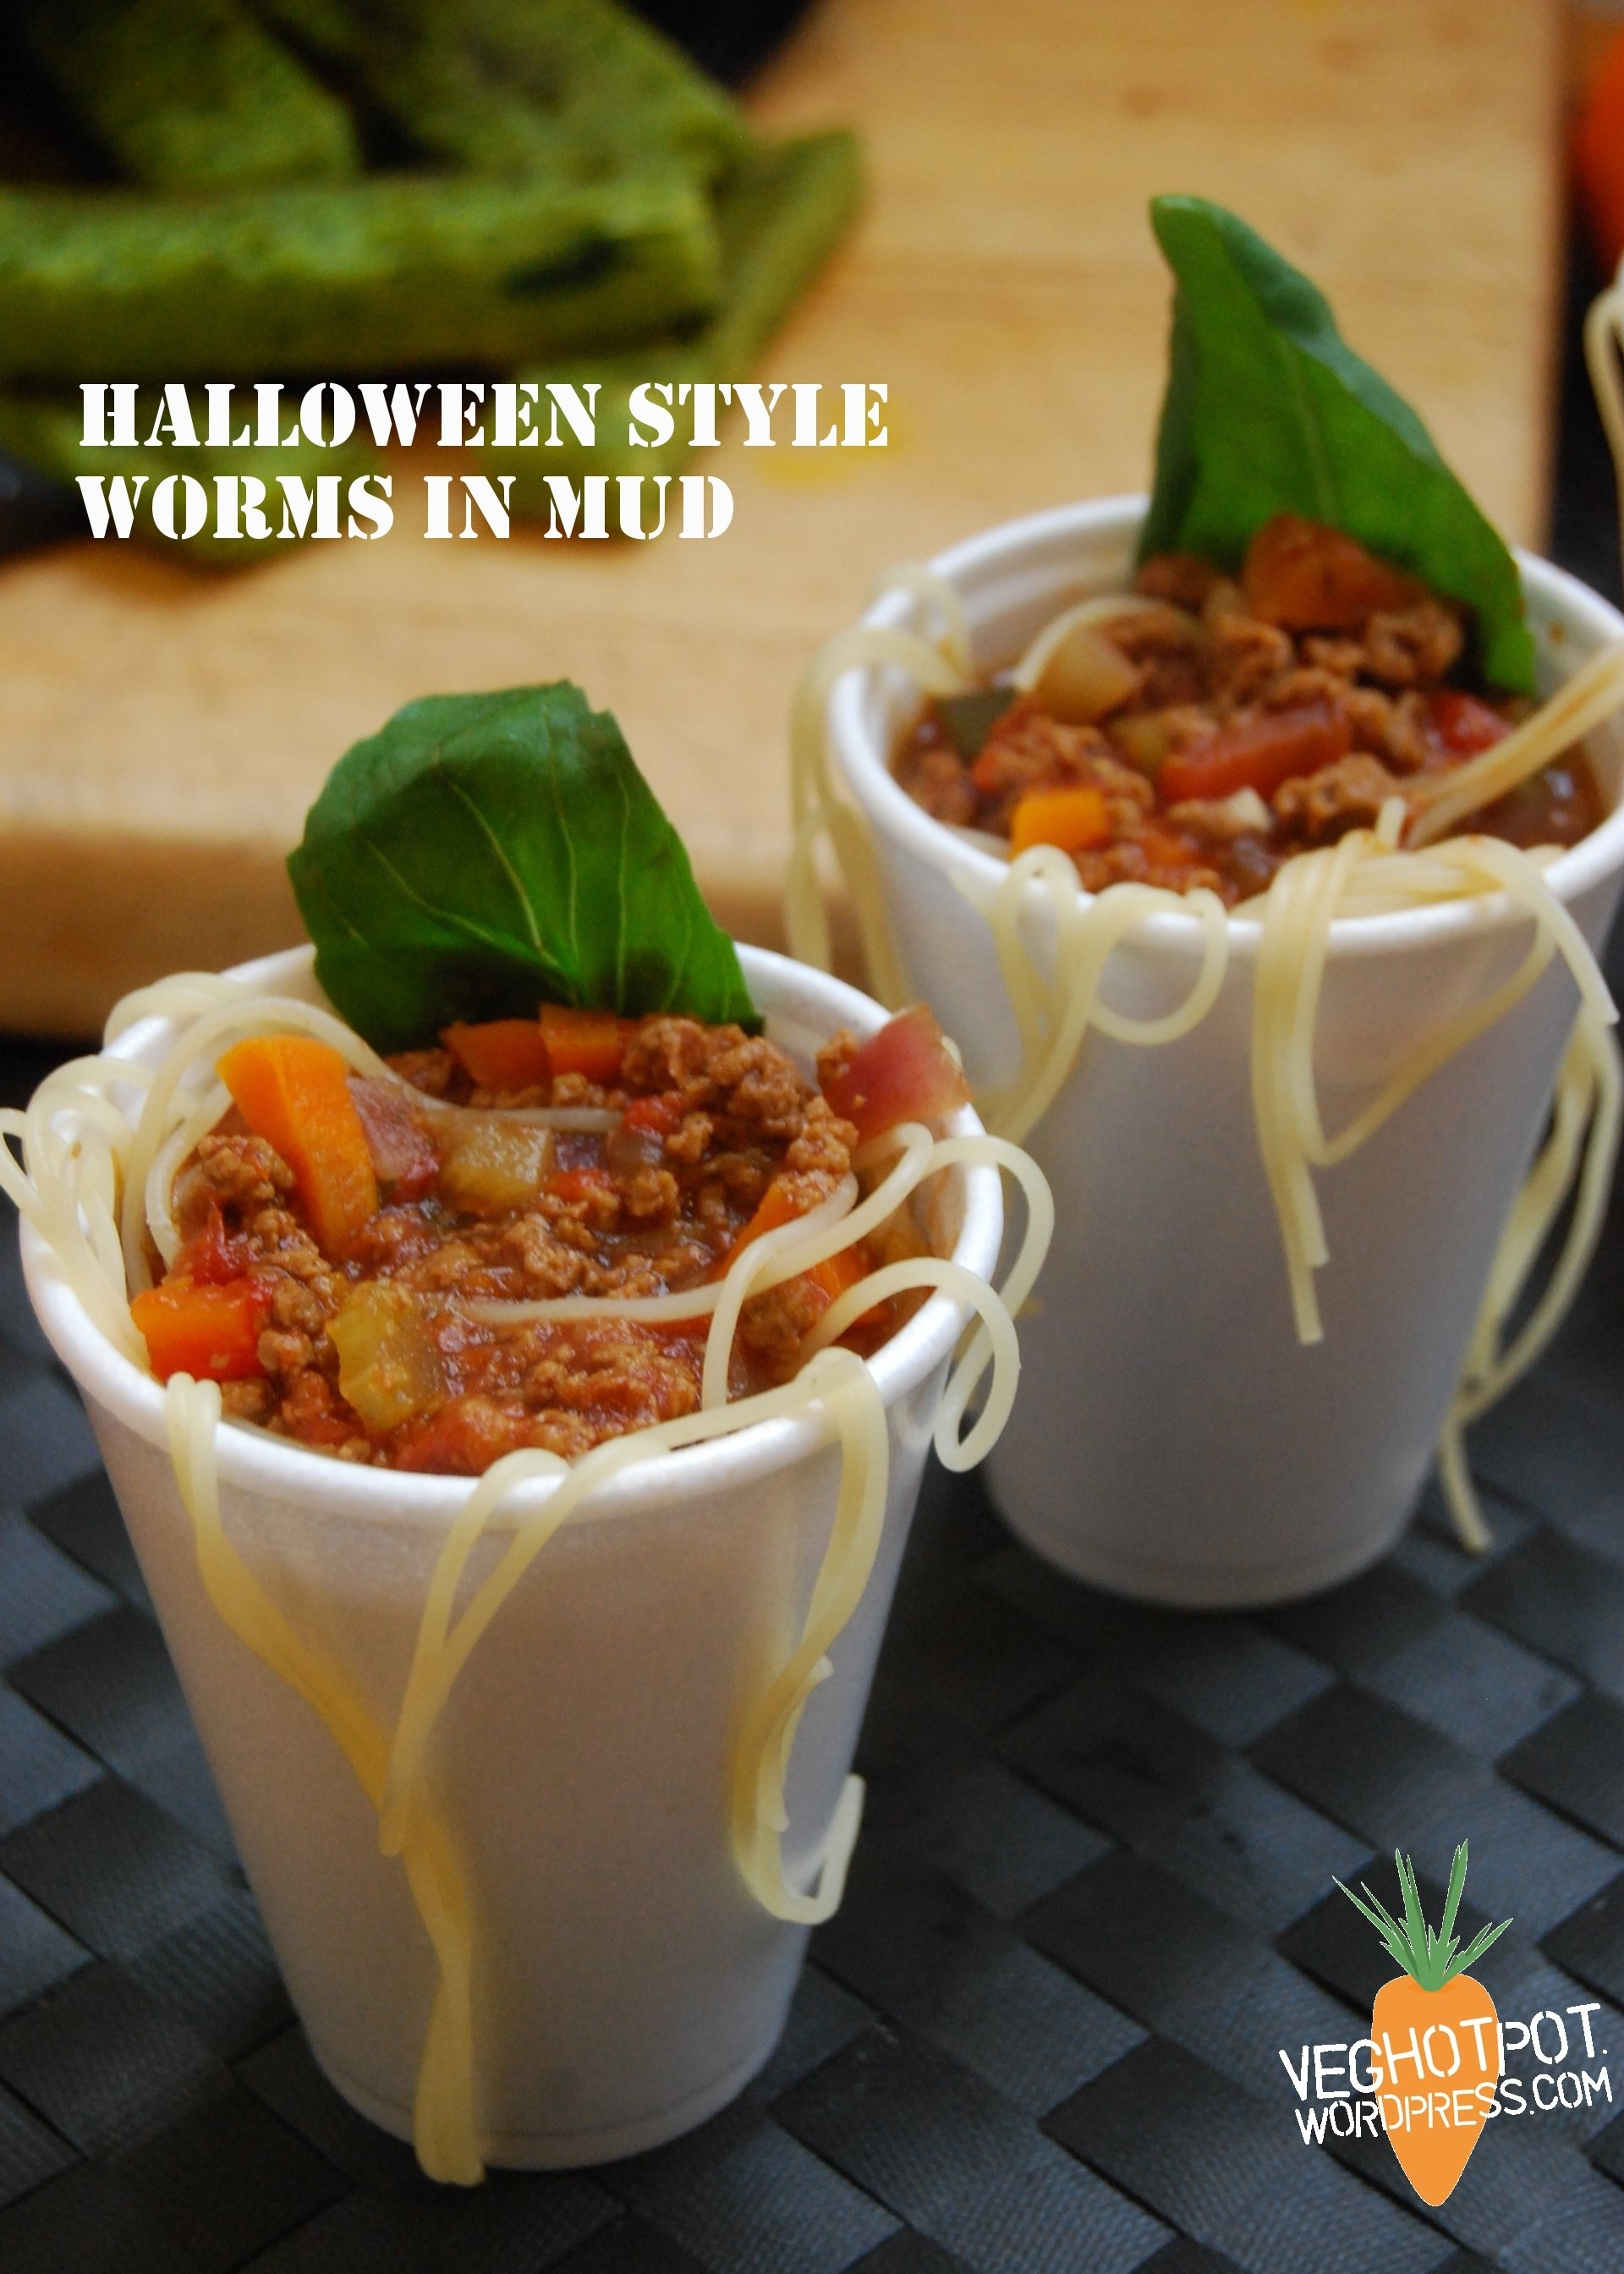 10 Unique Gross Halloween Party Food Ideas halloween party food savoury dishes to gross out your guests 2020